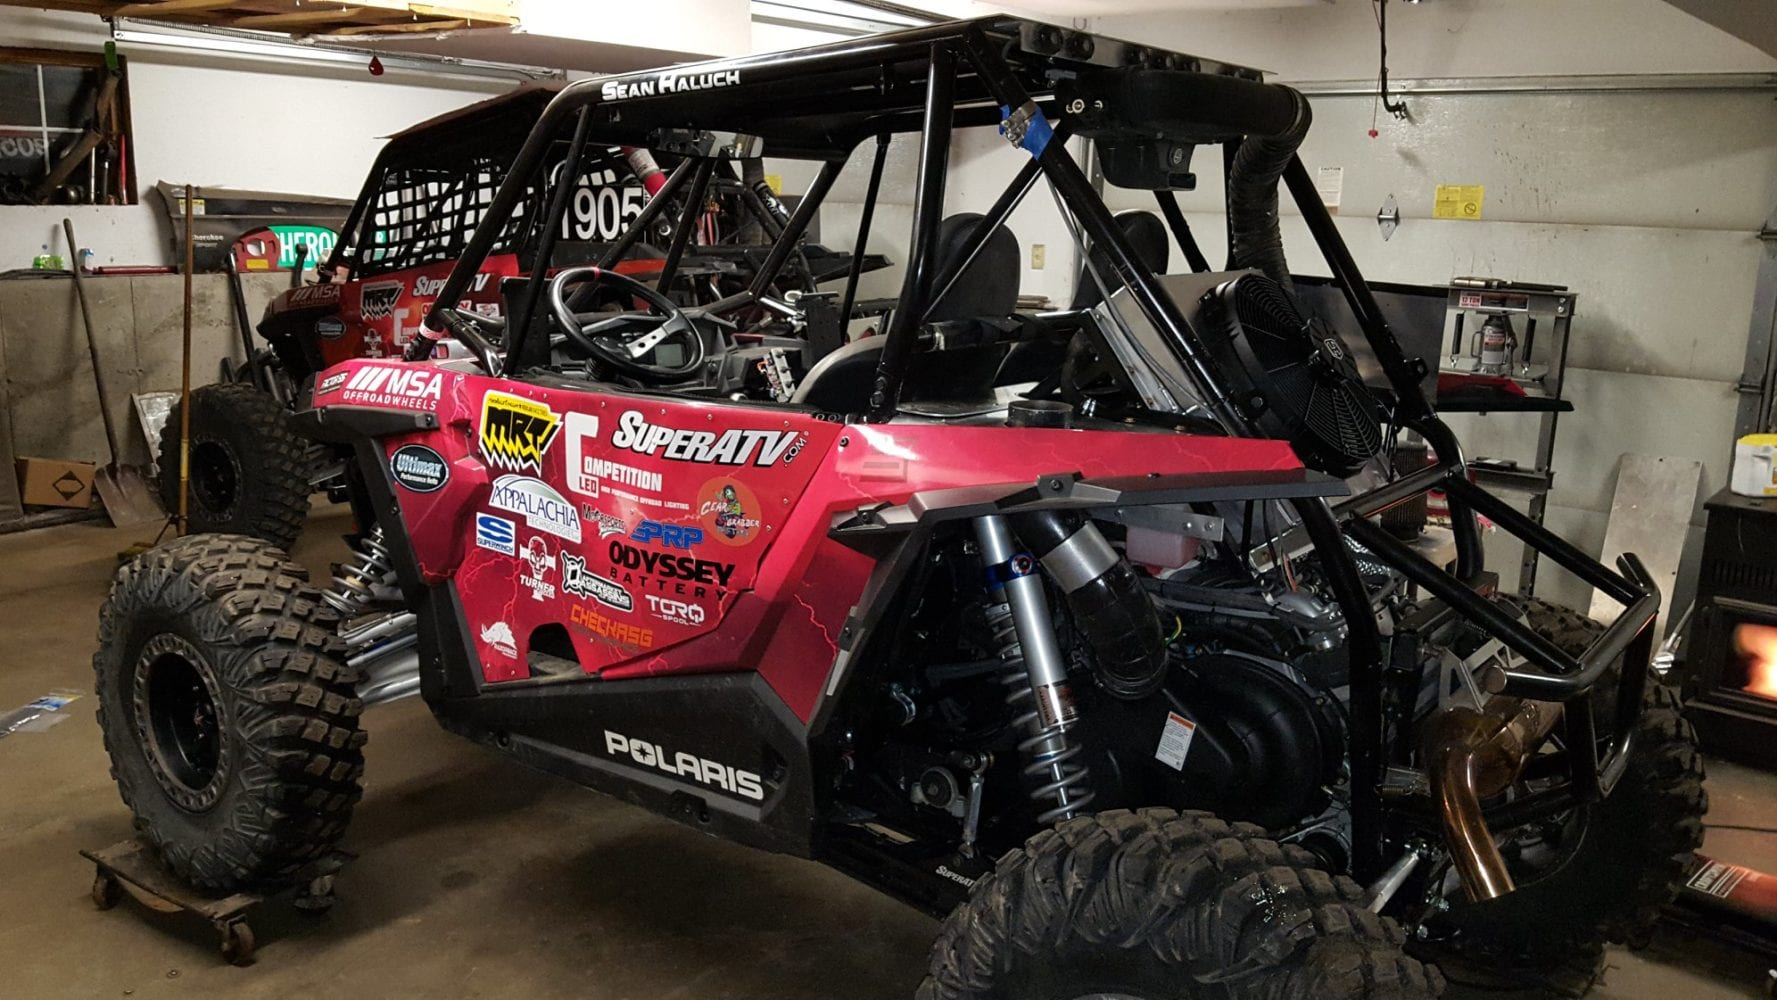 sean-haluch-racing-mrt-motoracetire-utv-race-tires 011